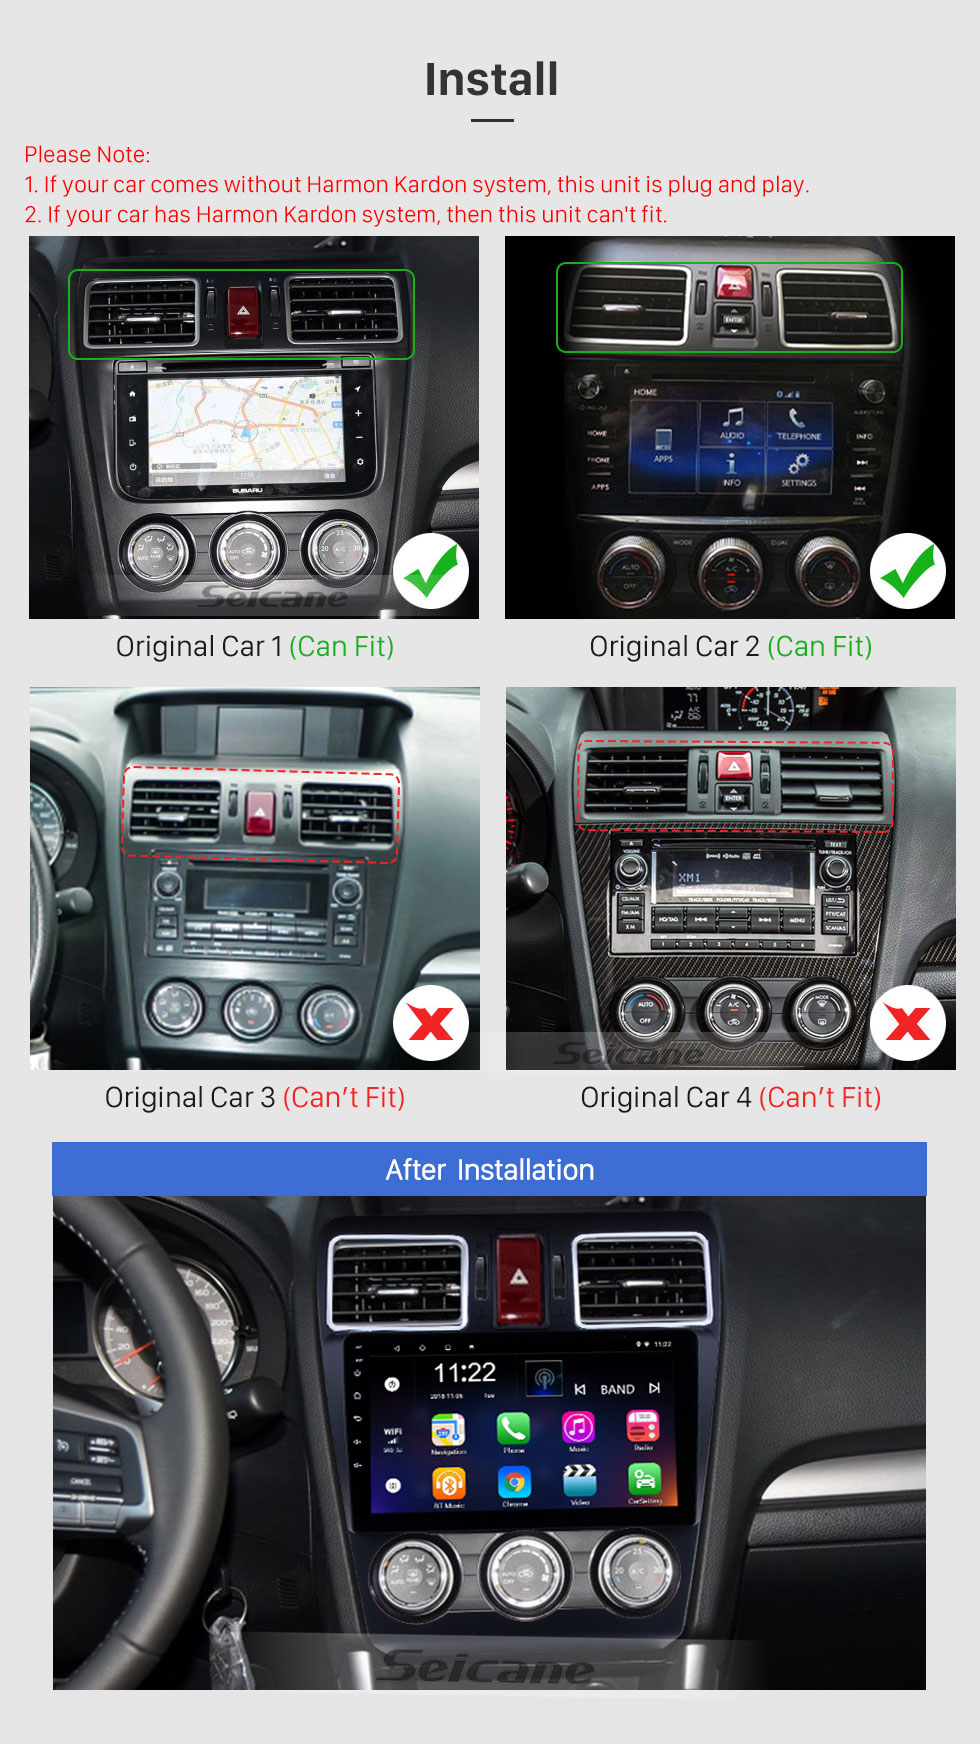 Seicane 9 Inch OEM Android 8.1 Radio Touch Screen Bluetooth GPS Navigation system For 2015 2016 2017 Subaru Forester Support 3G WiFi TPMS DVR OBD II Rear camera USB SD